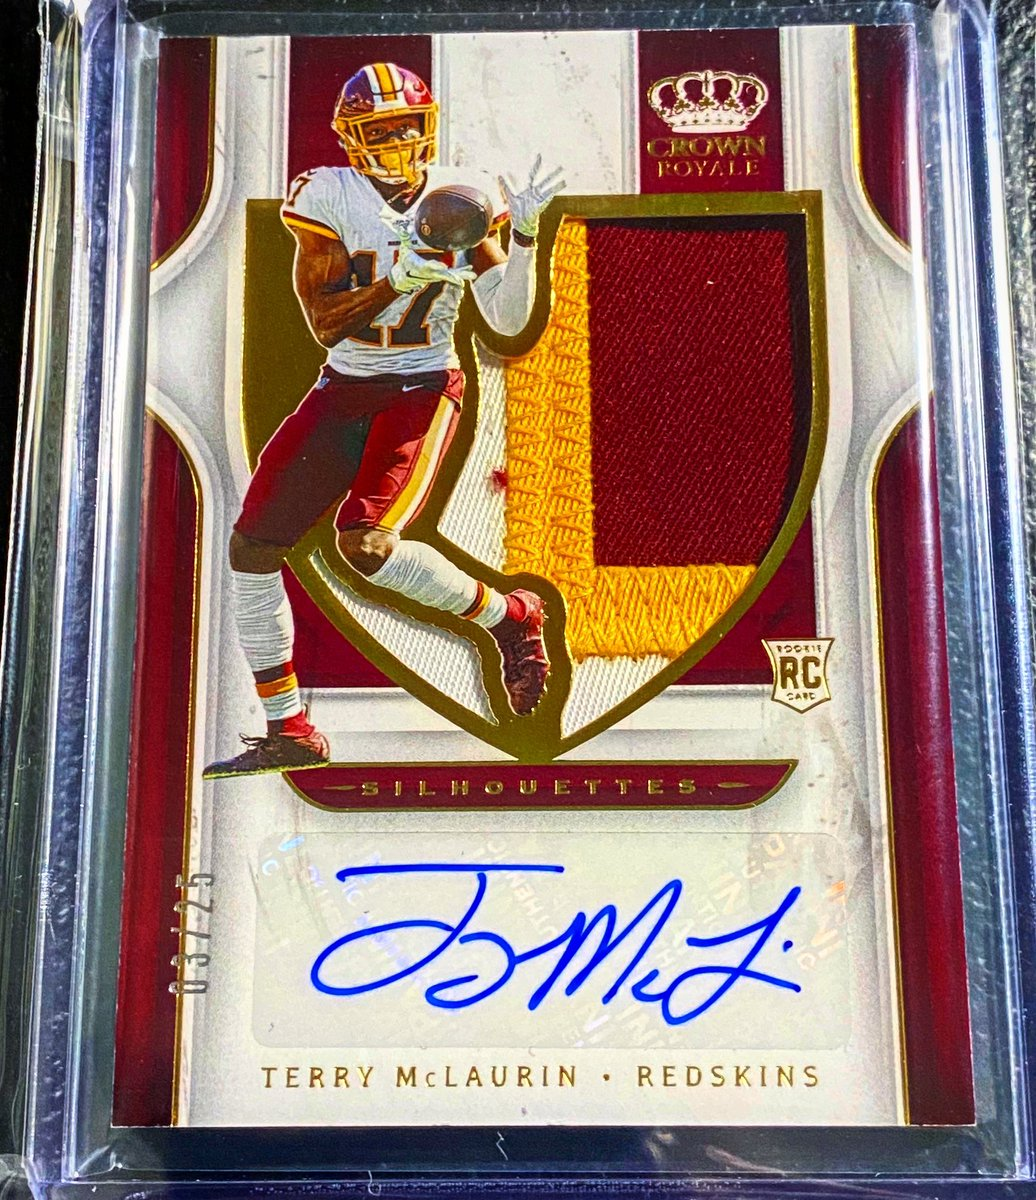 Love the patch on this @paniniamerica chronicles crown Royale @TheTerry_25 of @redskins to /25 #washingtonfootball #chiefsnation #nfluk #nflgameday #christianmccaffrey #saquonbarkley #packersnation… http://instagram.com/p/CDY-MGgng1s/…pic.twitter.com/2HhXROKT9E